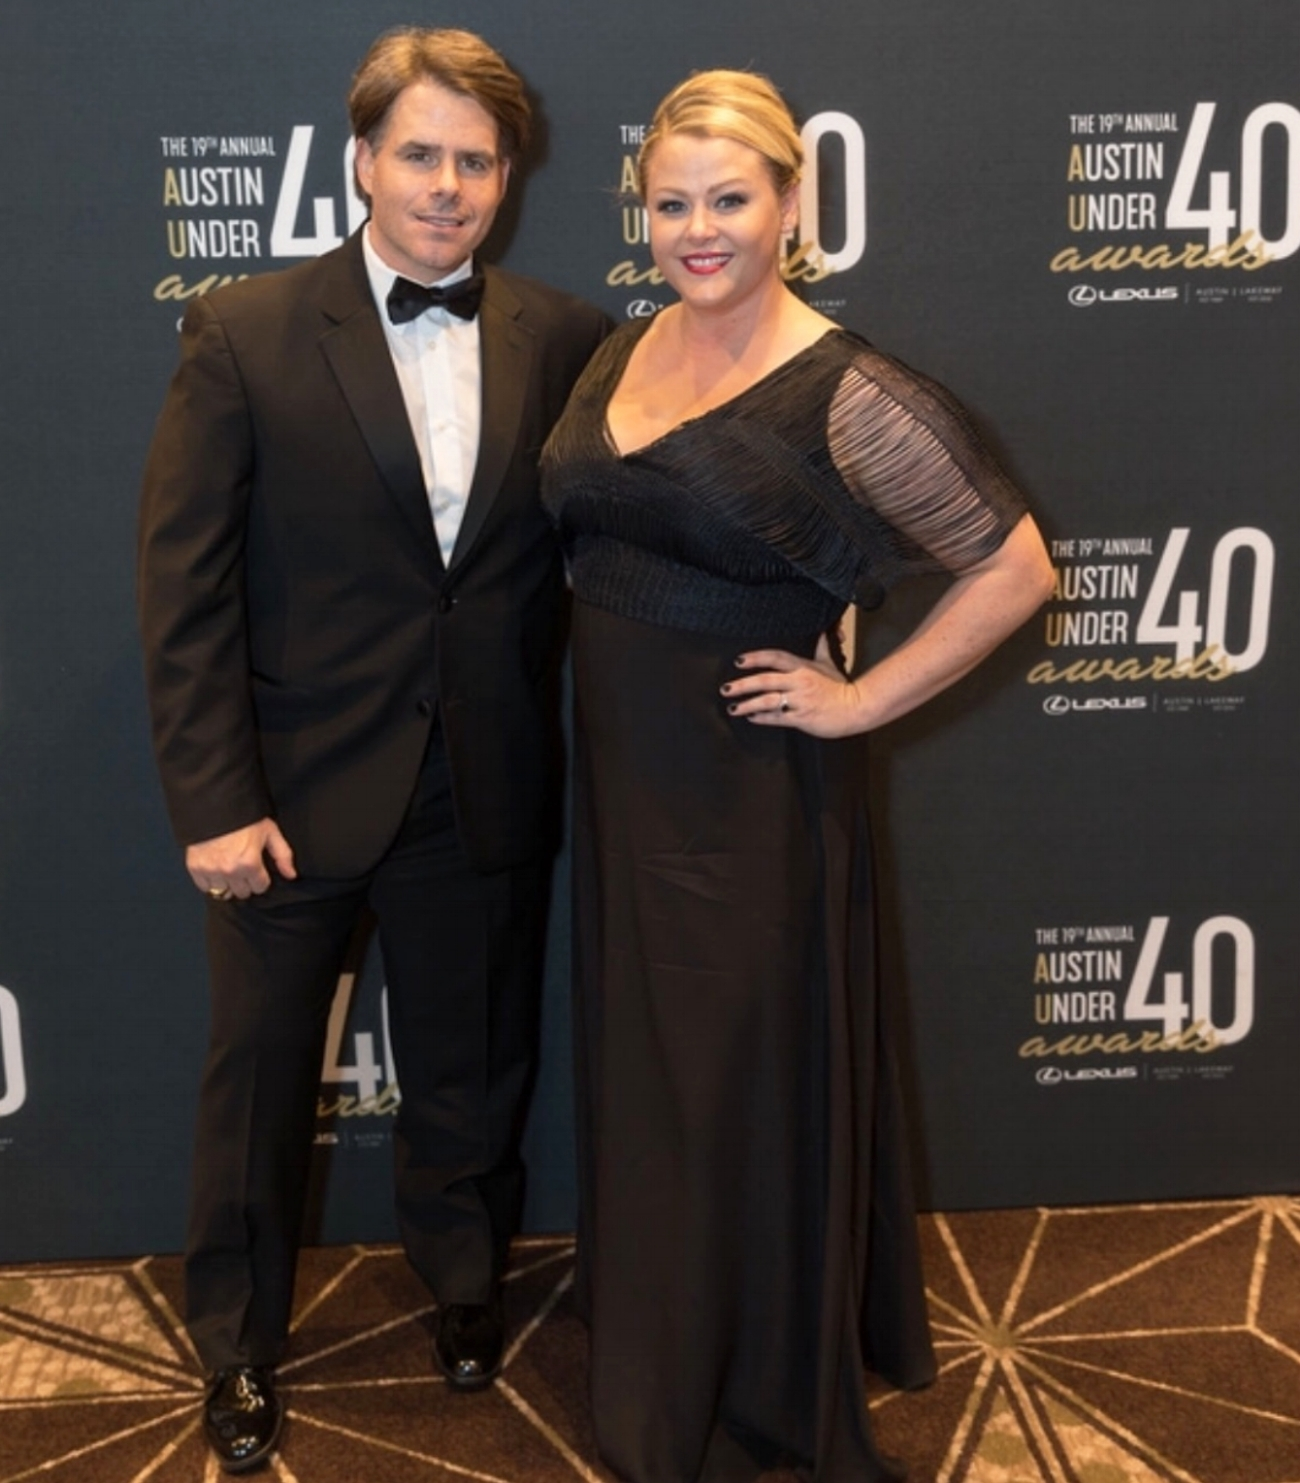 jessica and her husband mike at 'austin under 40' gala. jessica is wearing custom mod gown